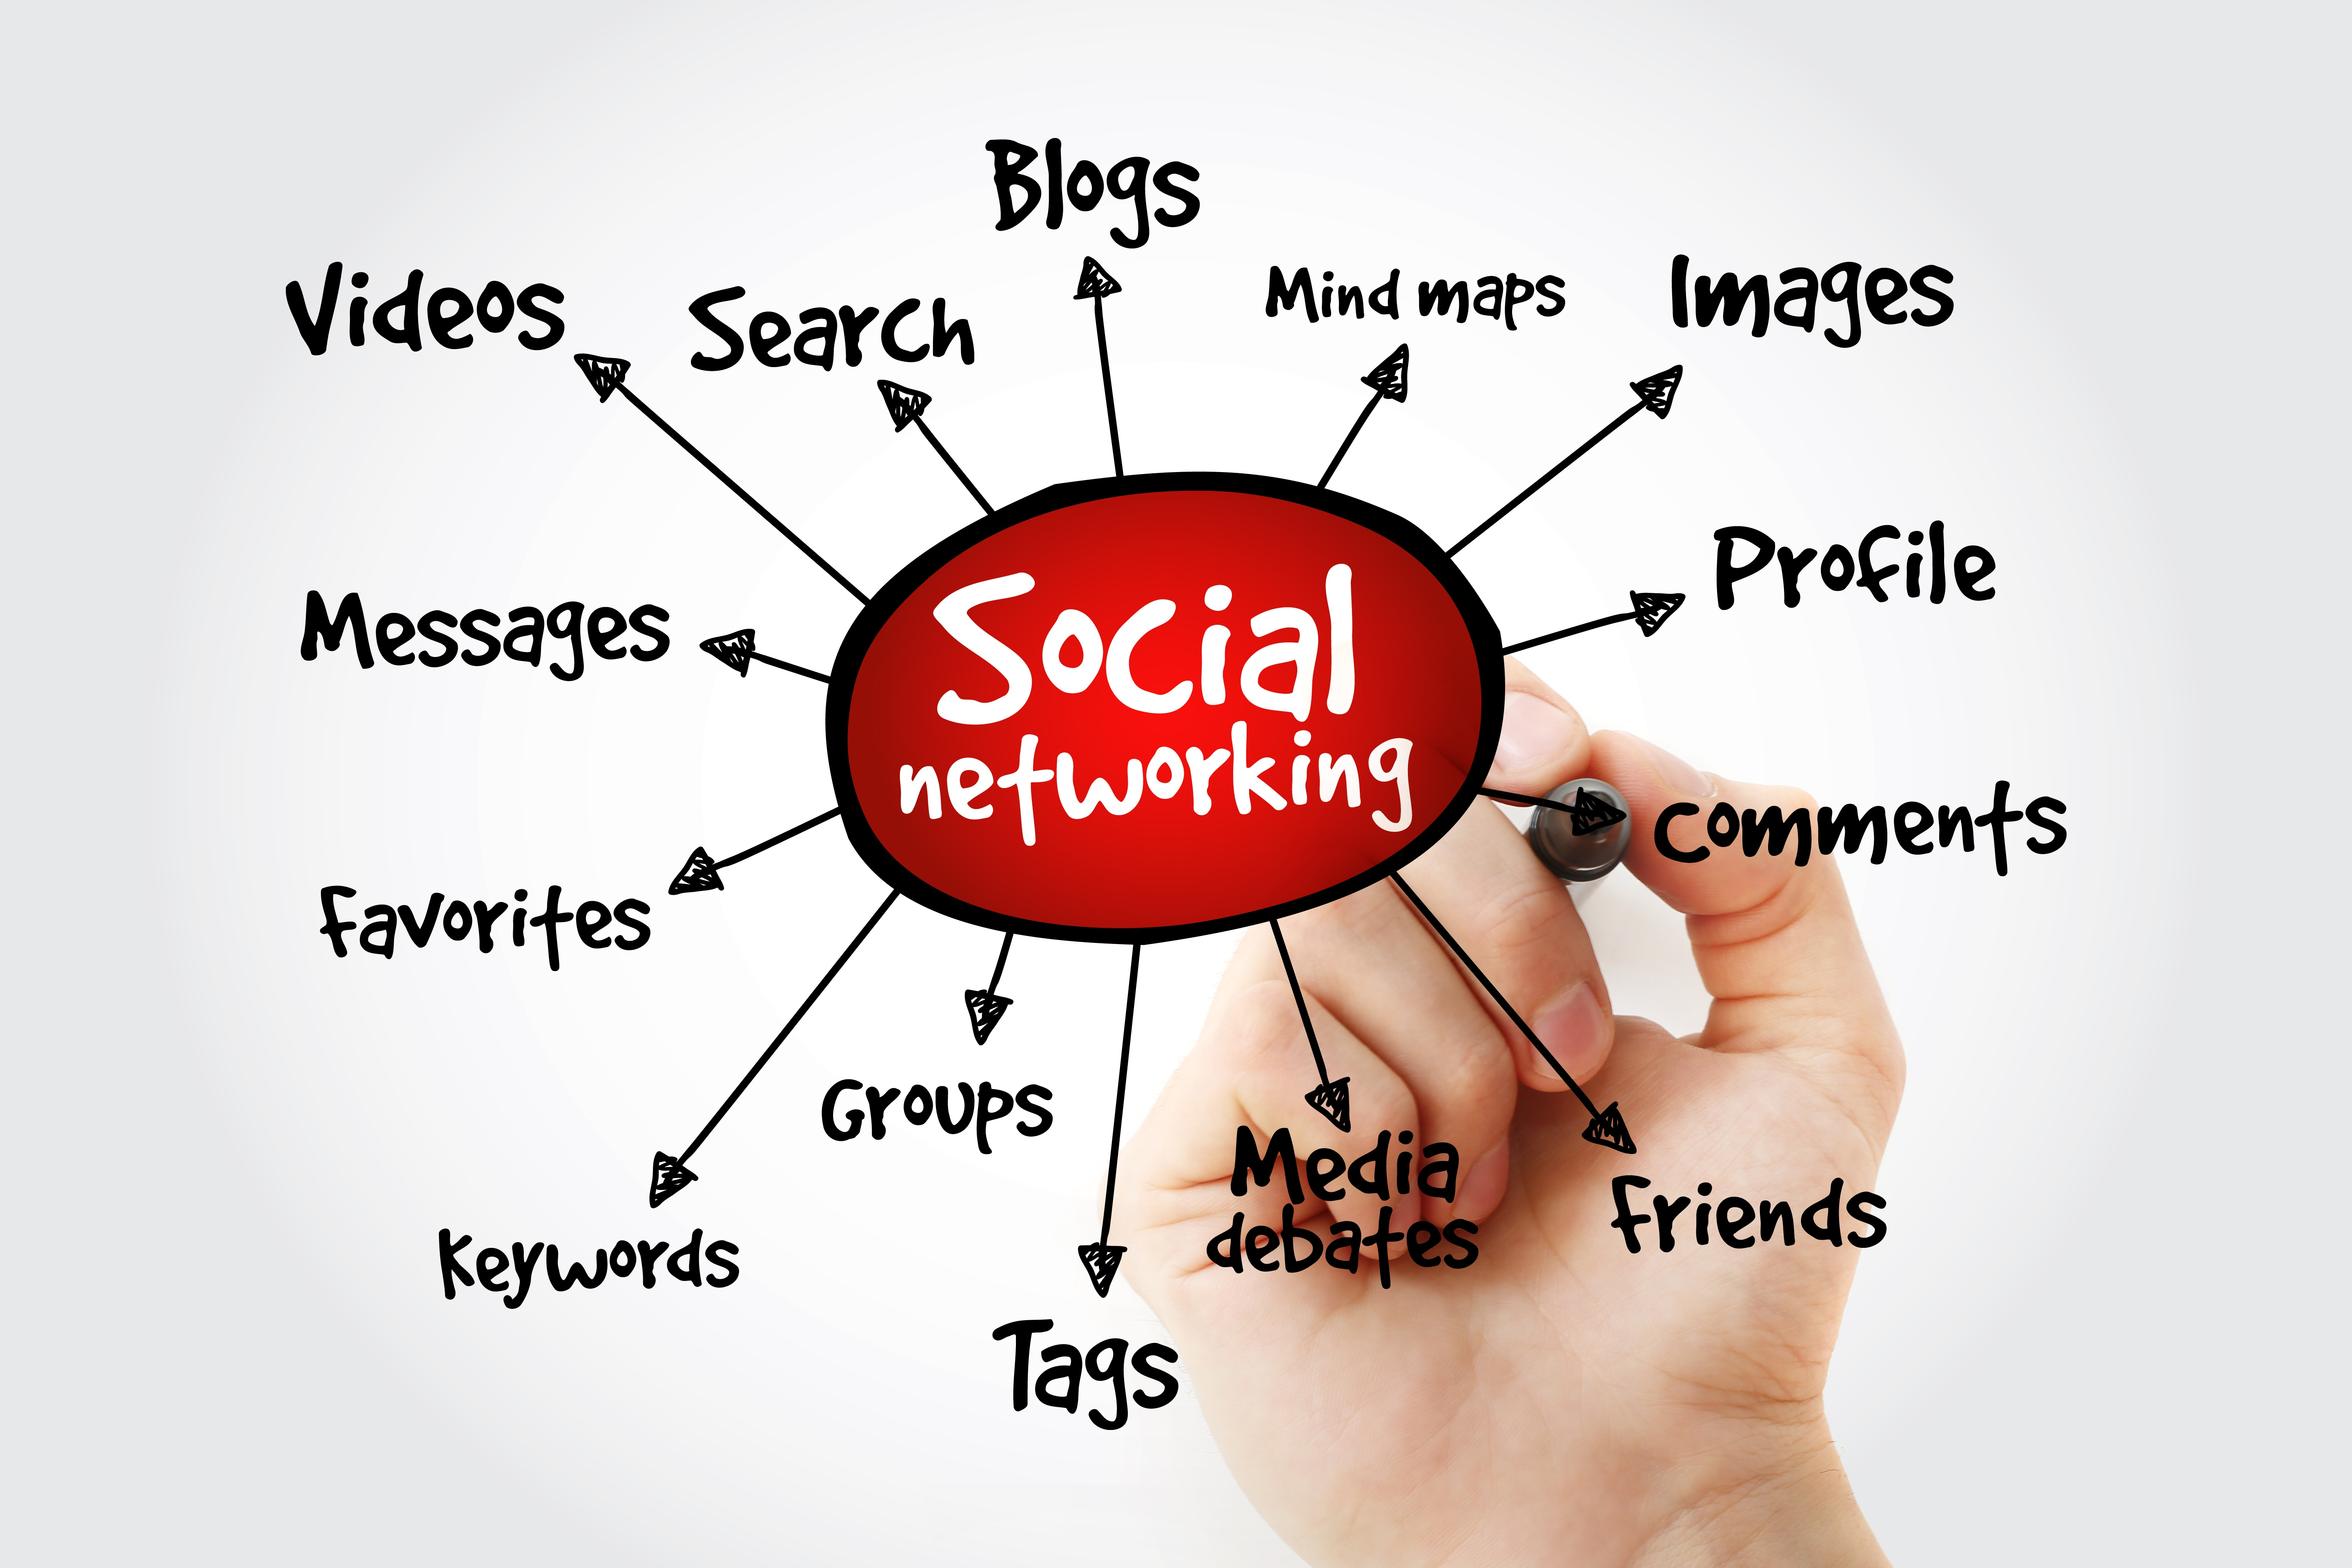 social bookmarking, networking, tags, profiles, accounts, friends, keywords, search, SEO